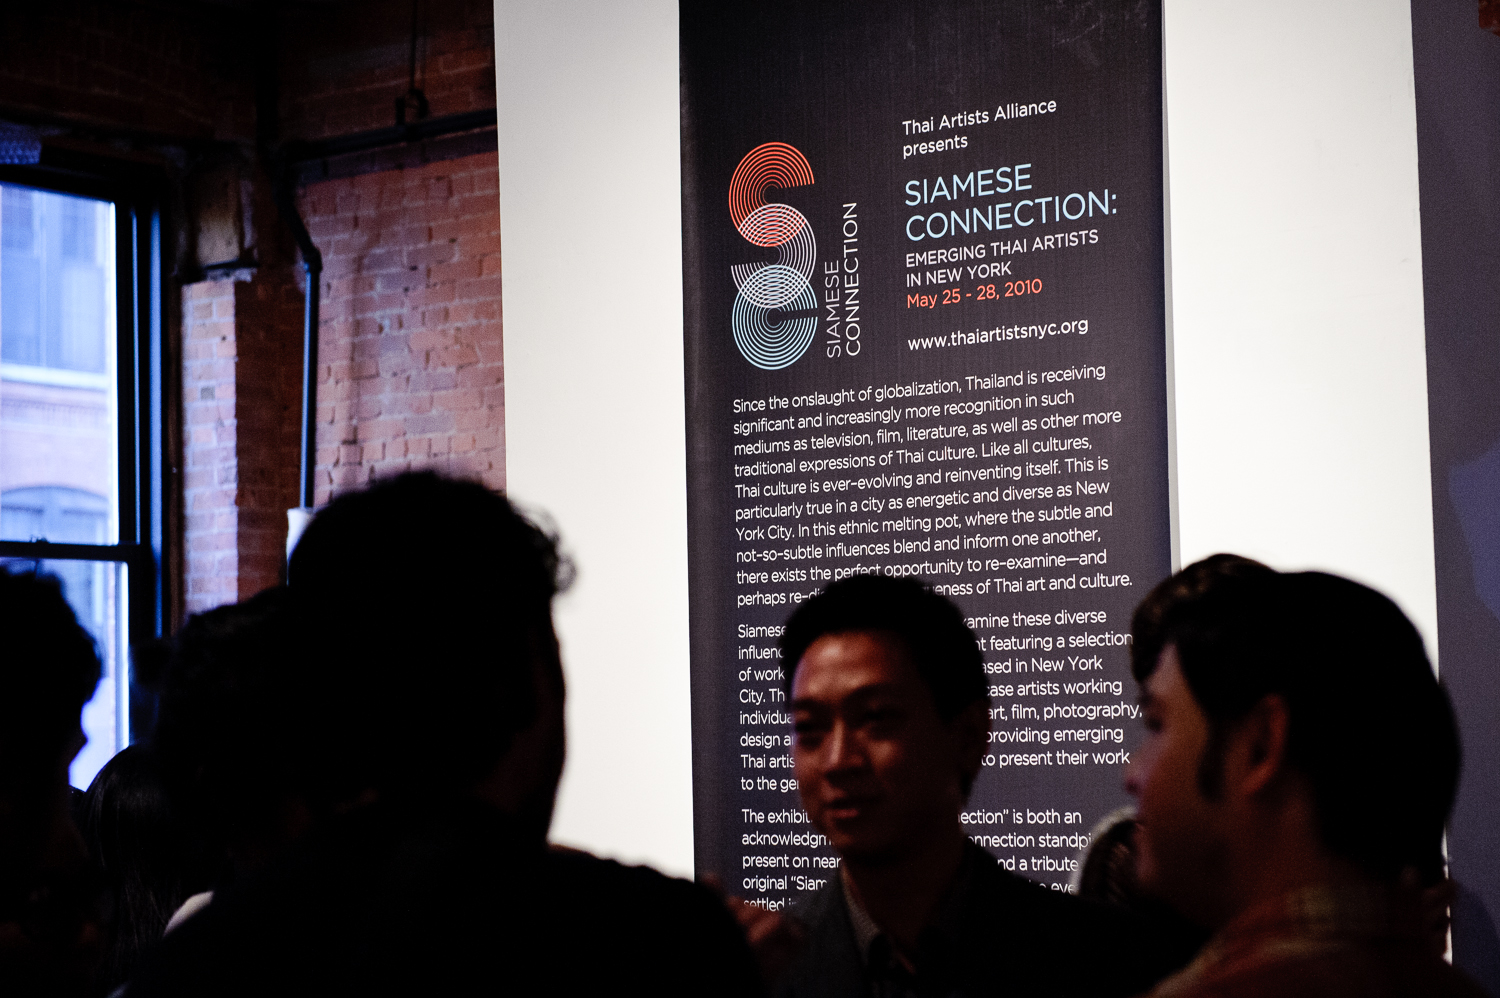 05.25.10-siamese_connection_opening_014.jpg